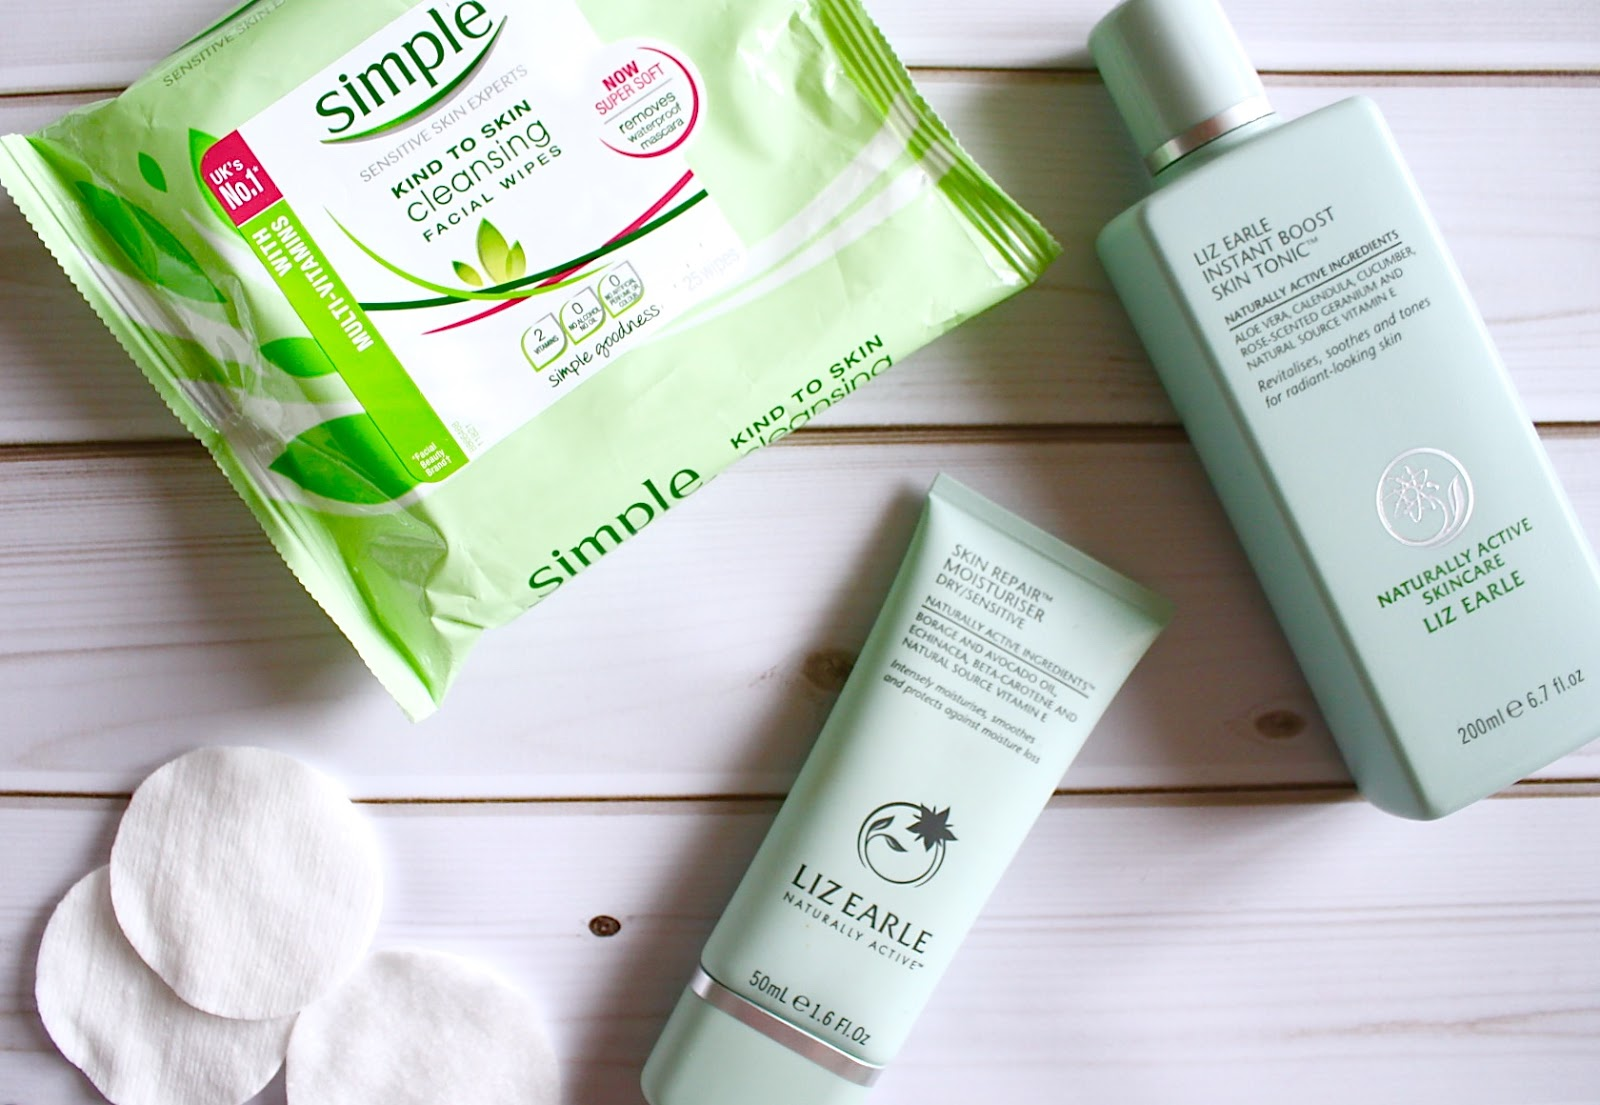 Skincare for sensitive skin